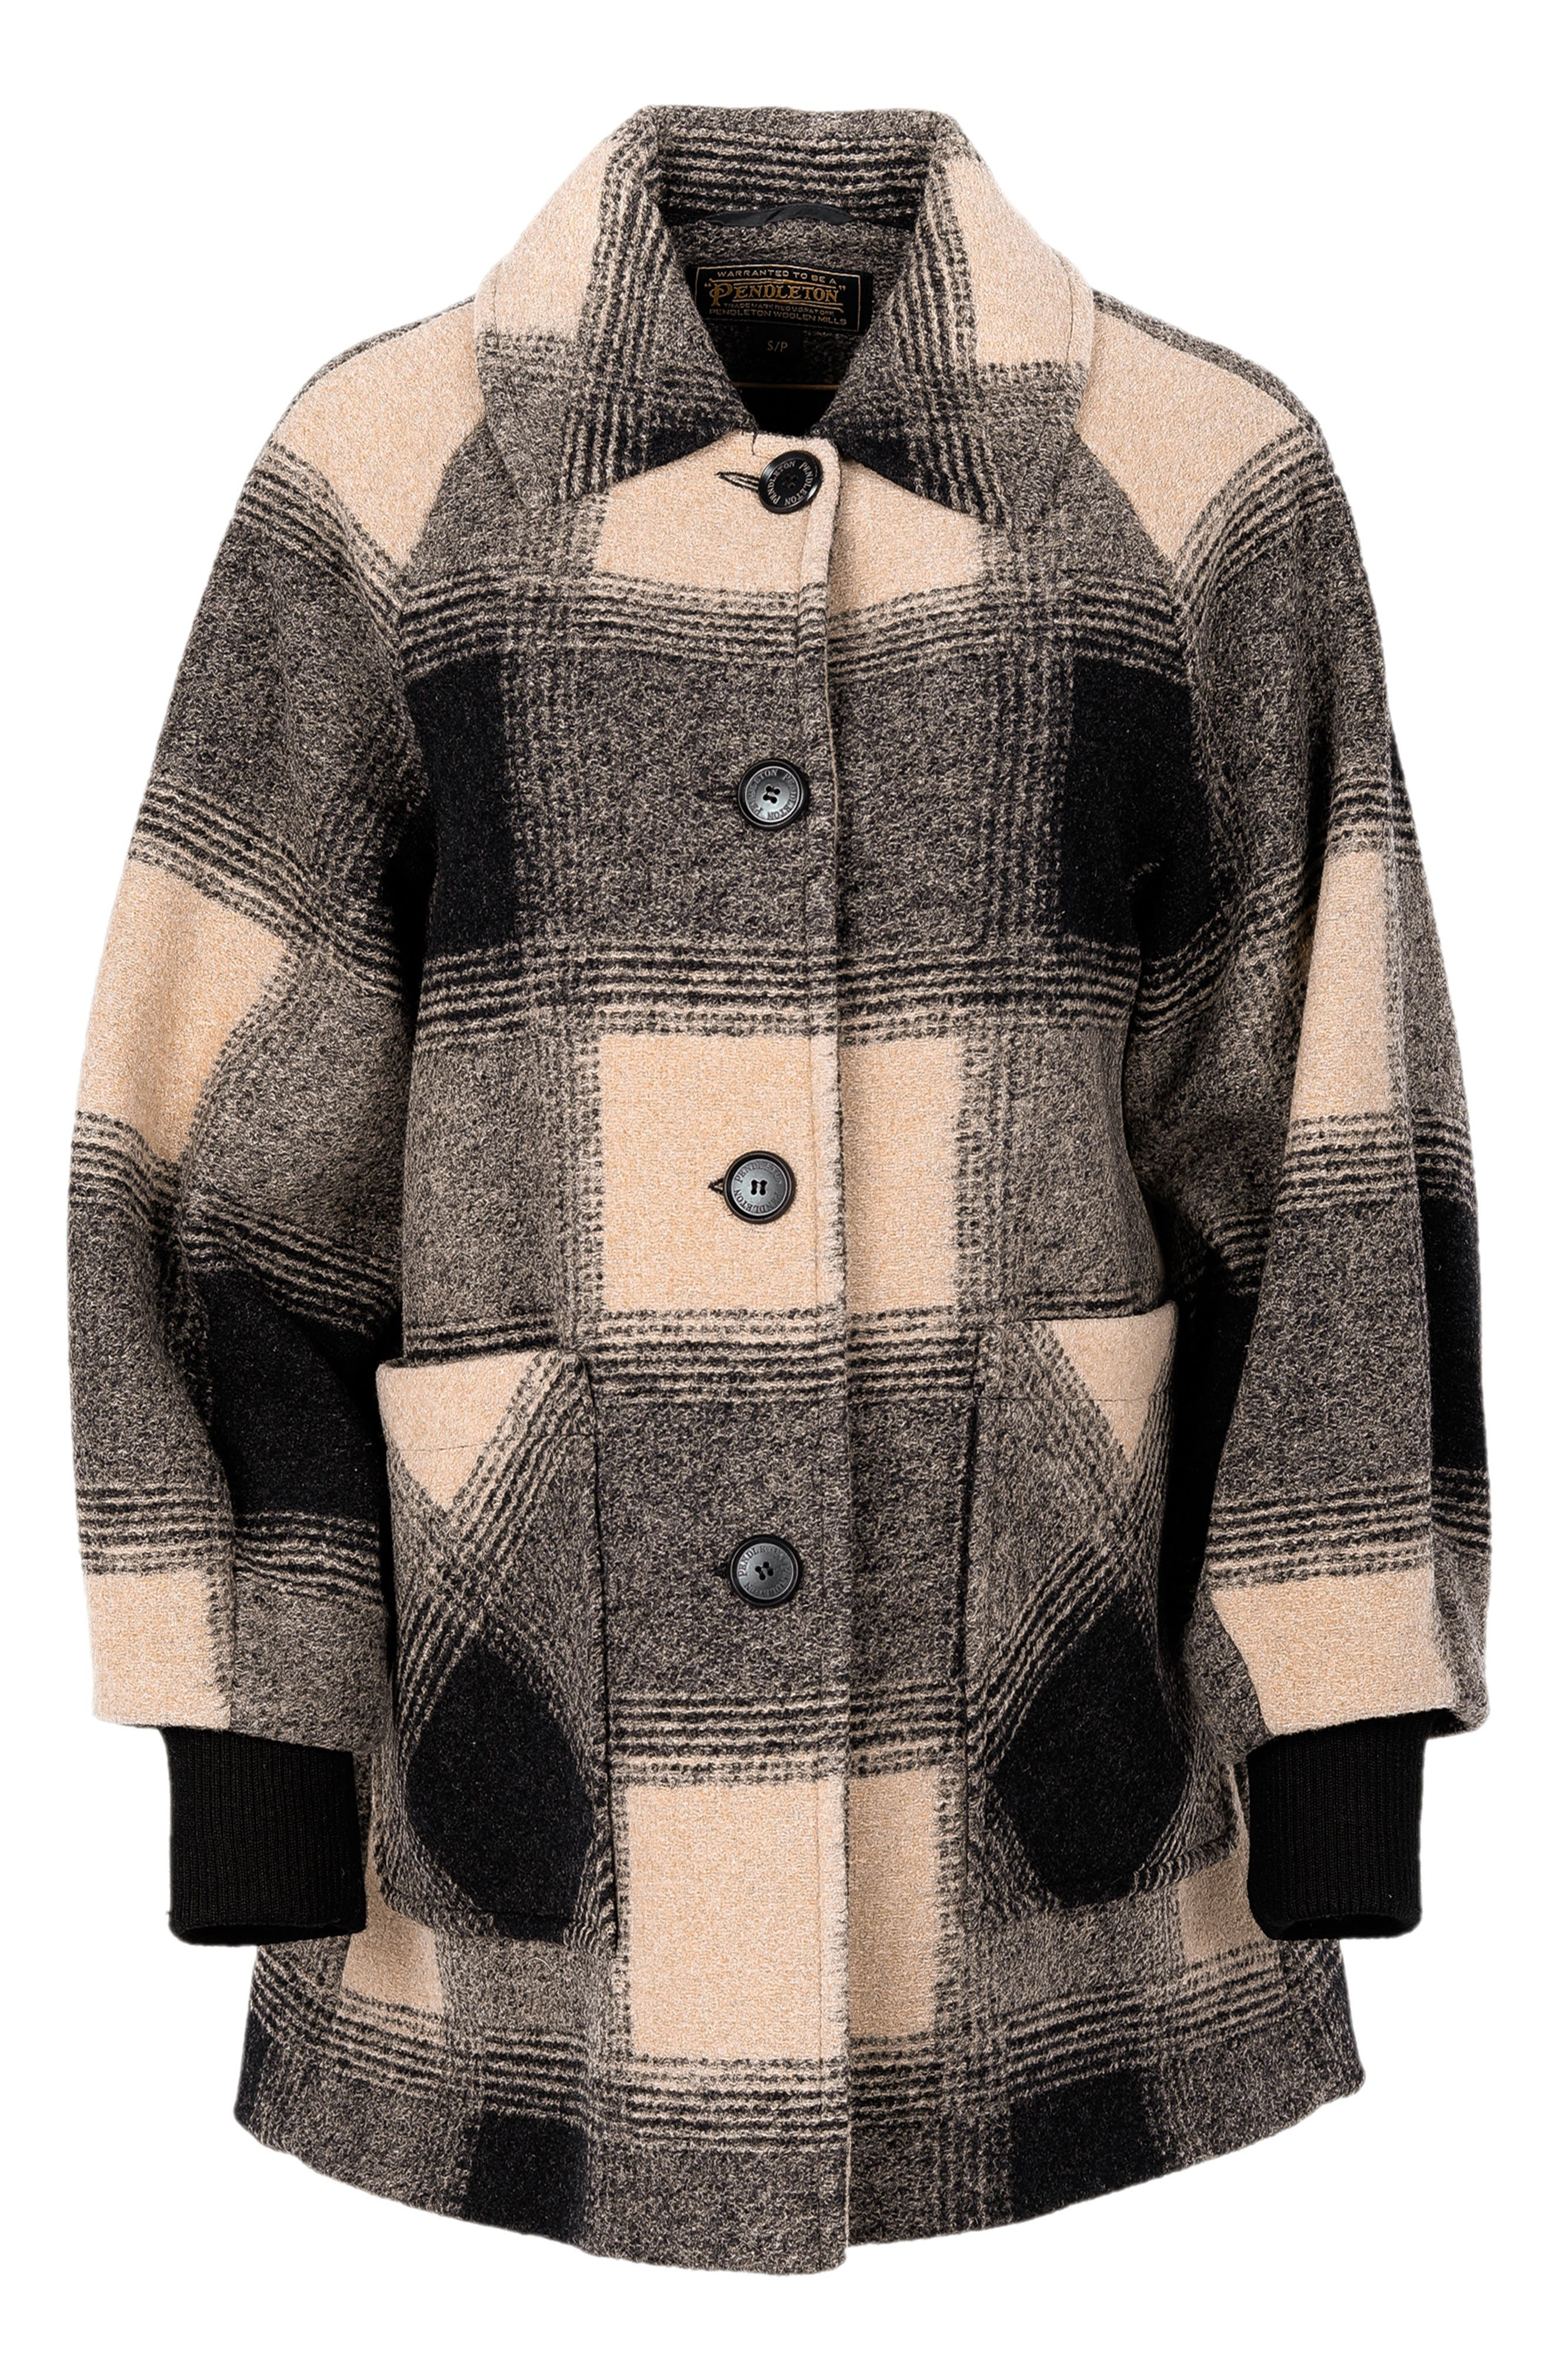 1950s Jackets, Coats, Bolero | Swing, Pin Up, Rockabilly Womens Pendleton Shorthills Raglan Wool Blend Coat $249.90 AT vintagedancer.com